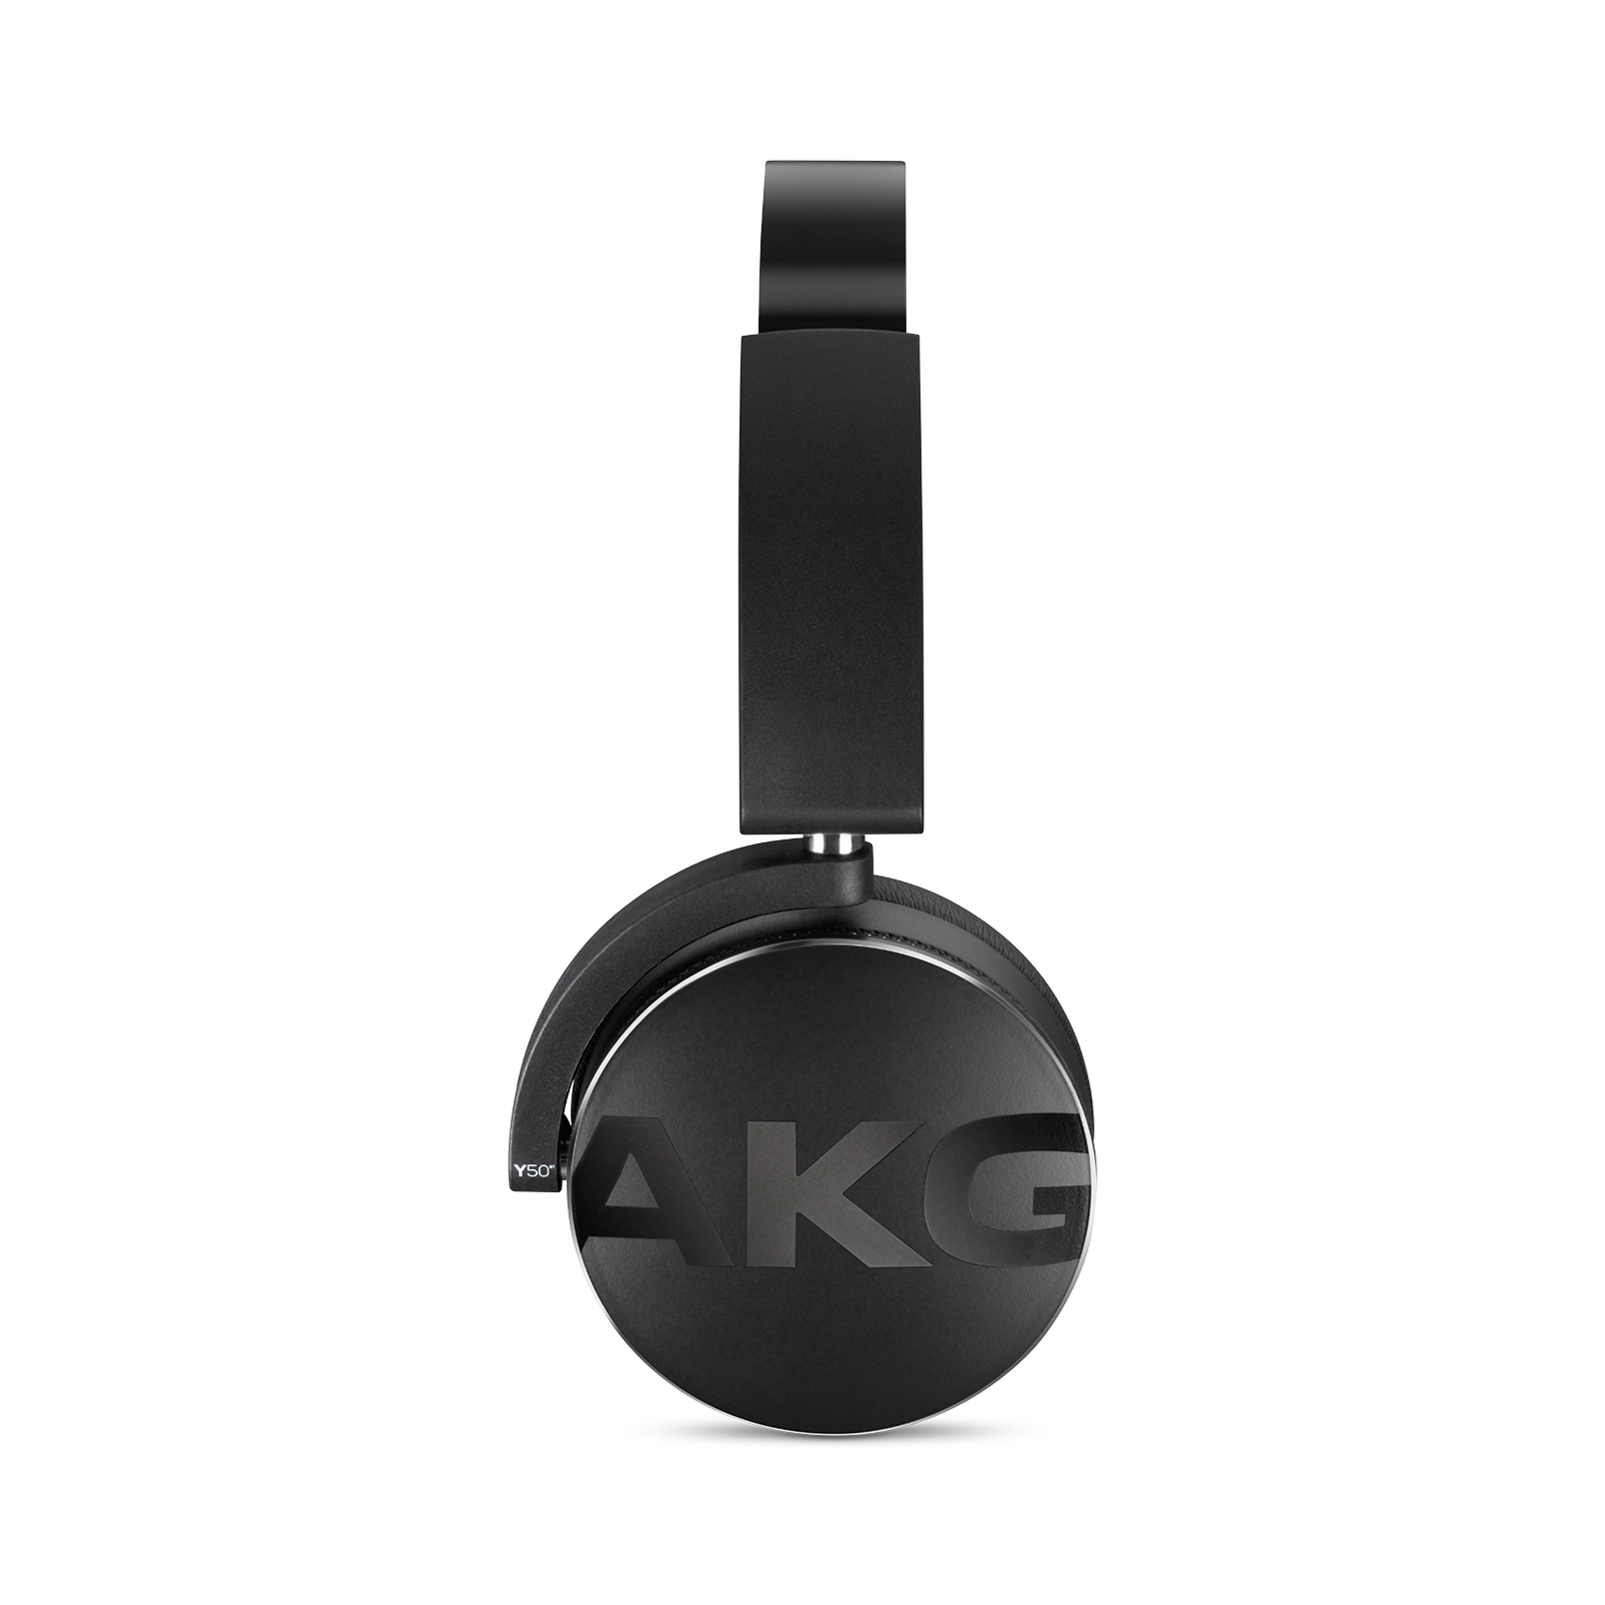 Akg wireless headphones with microphone - earbud with microphone for phone